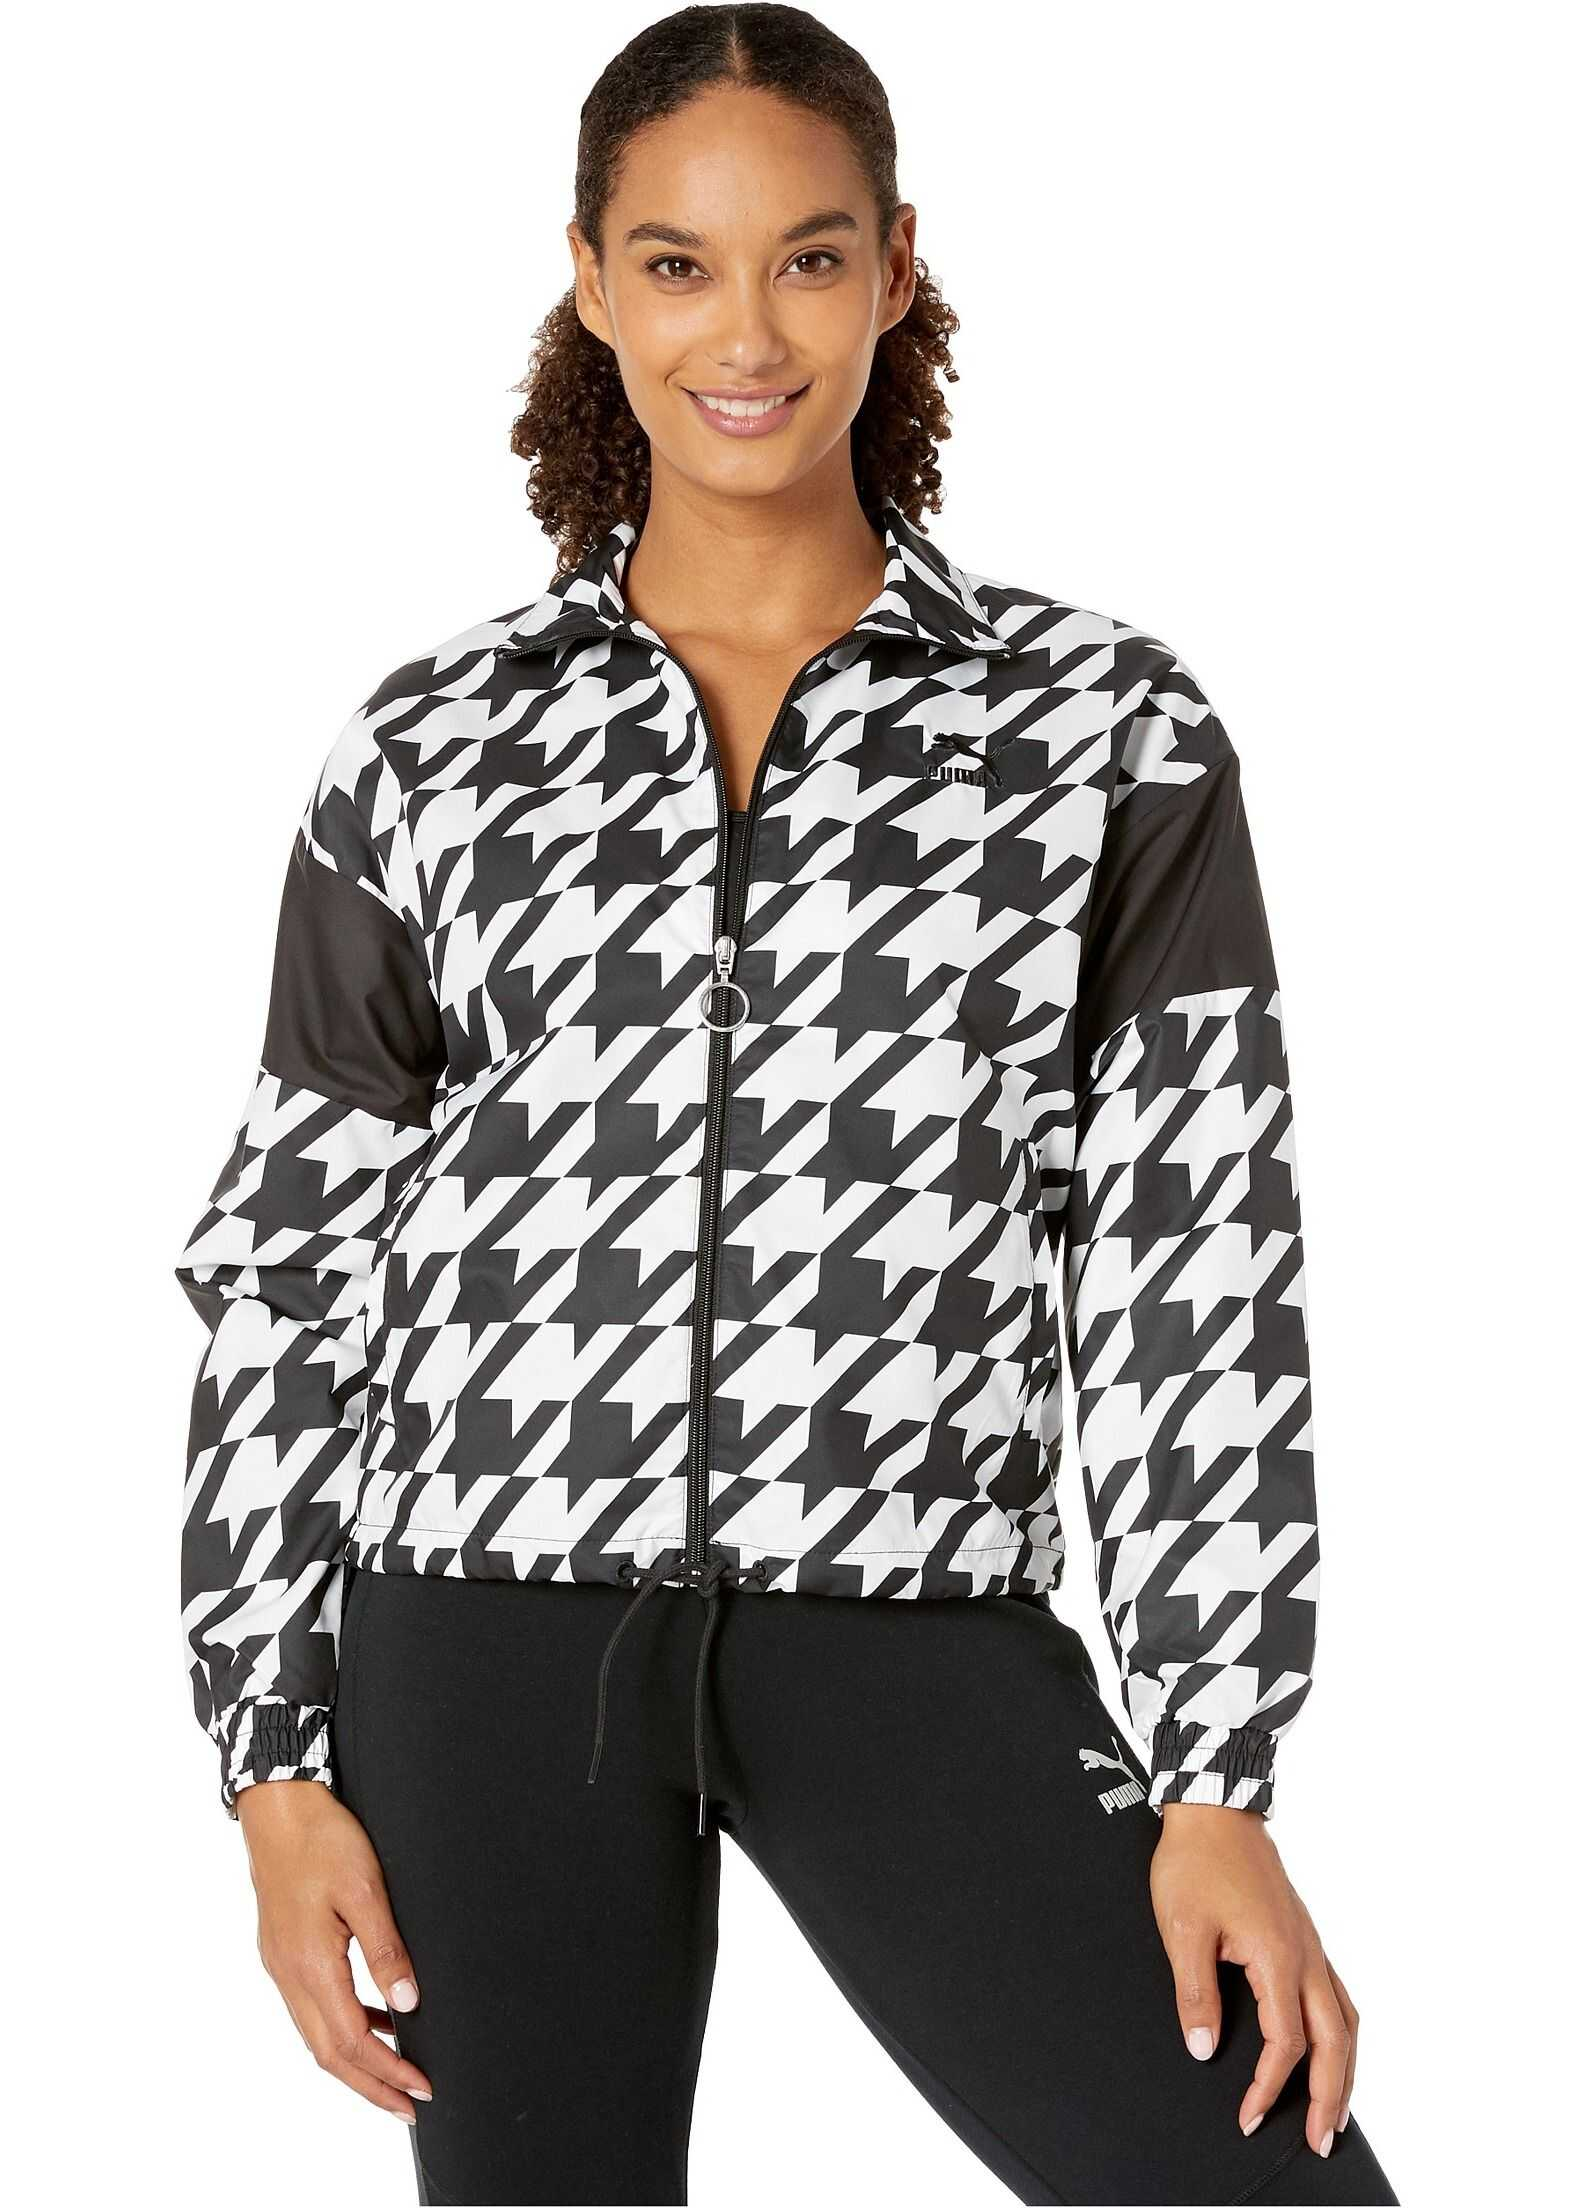 PUMA Trend All Over Print Woven Jacket Black Houndstooth